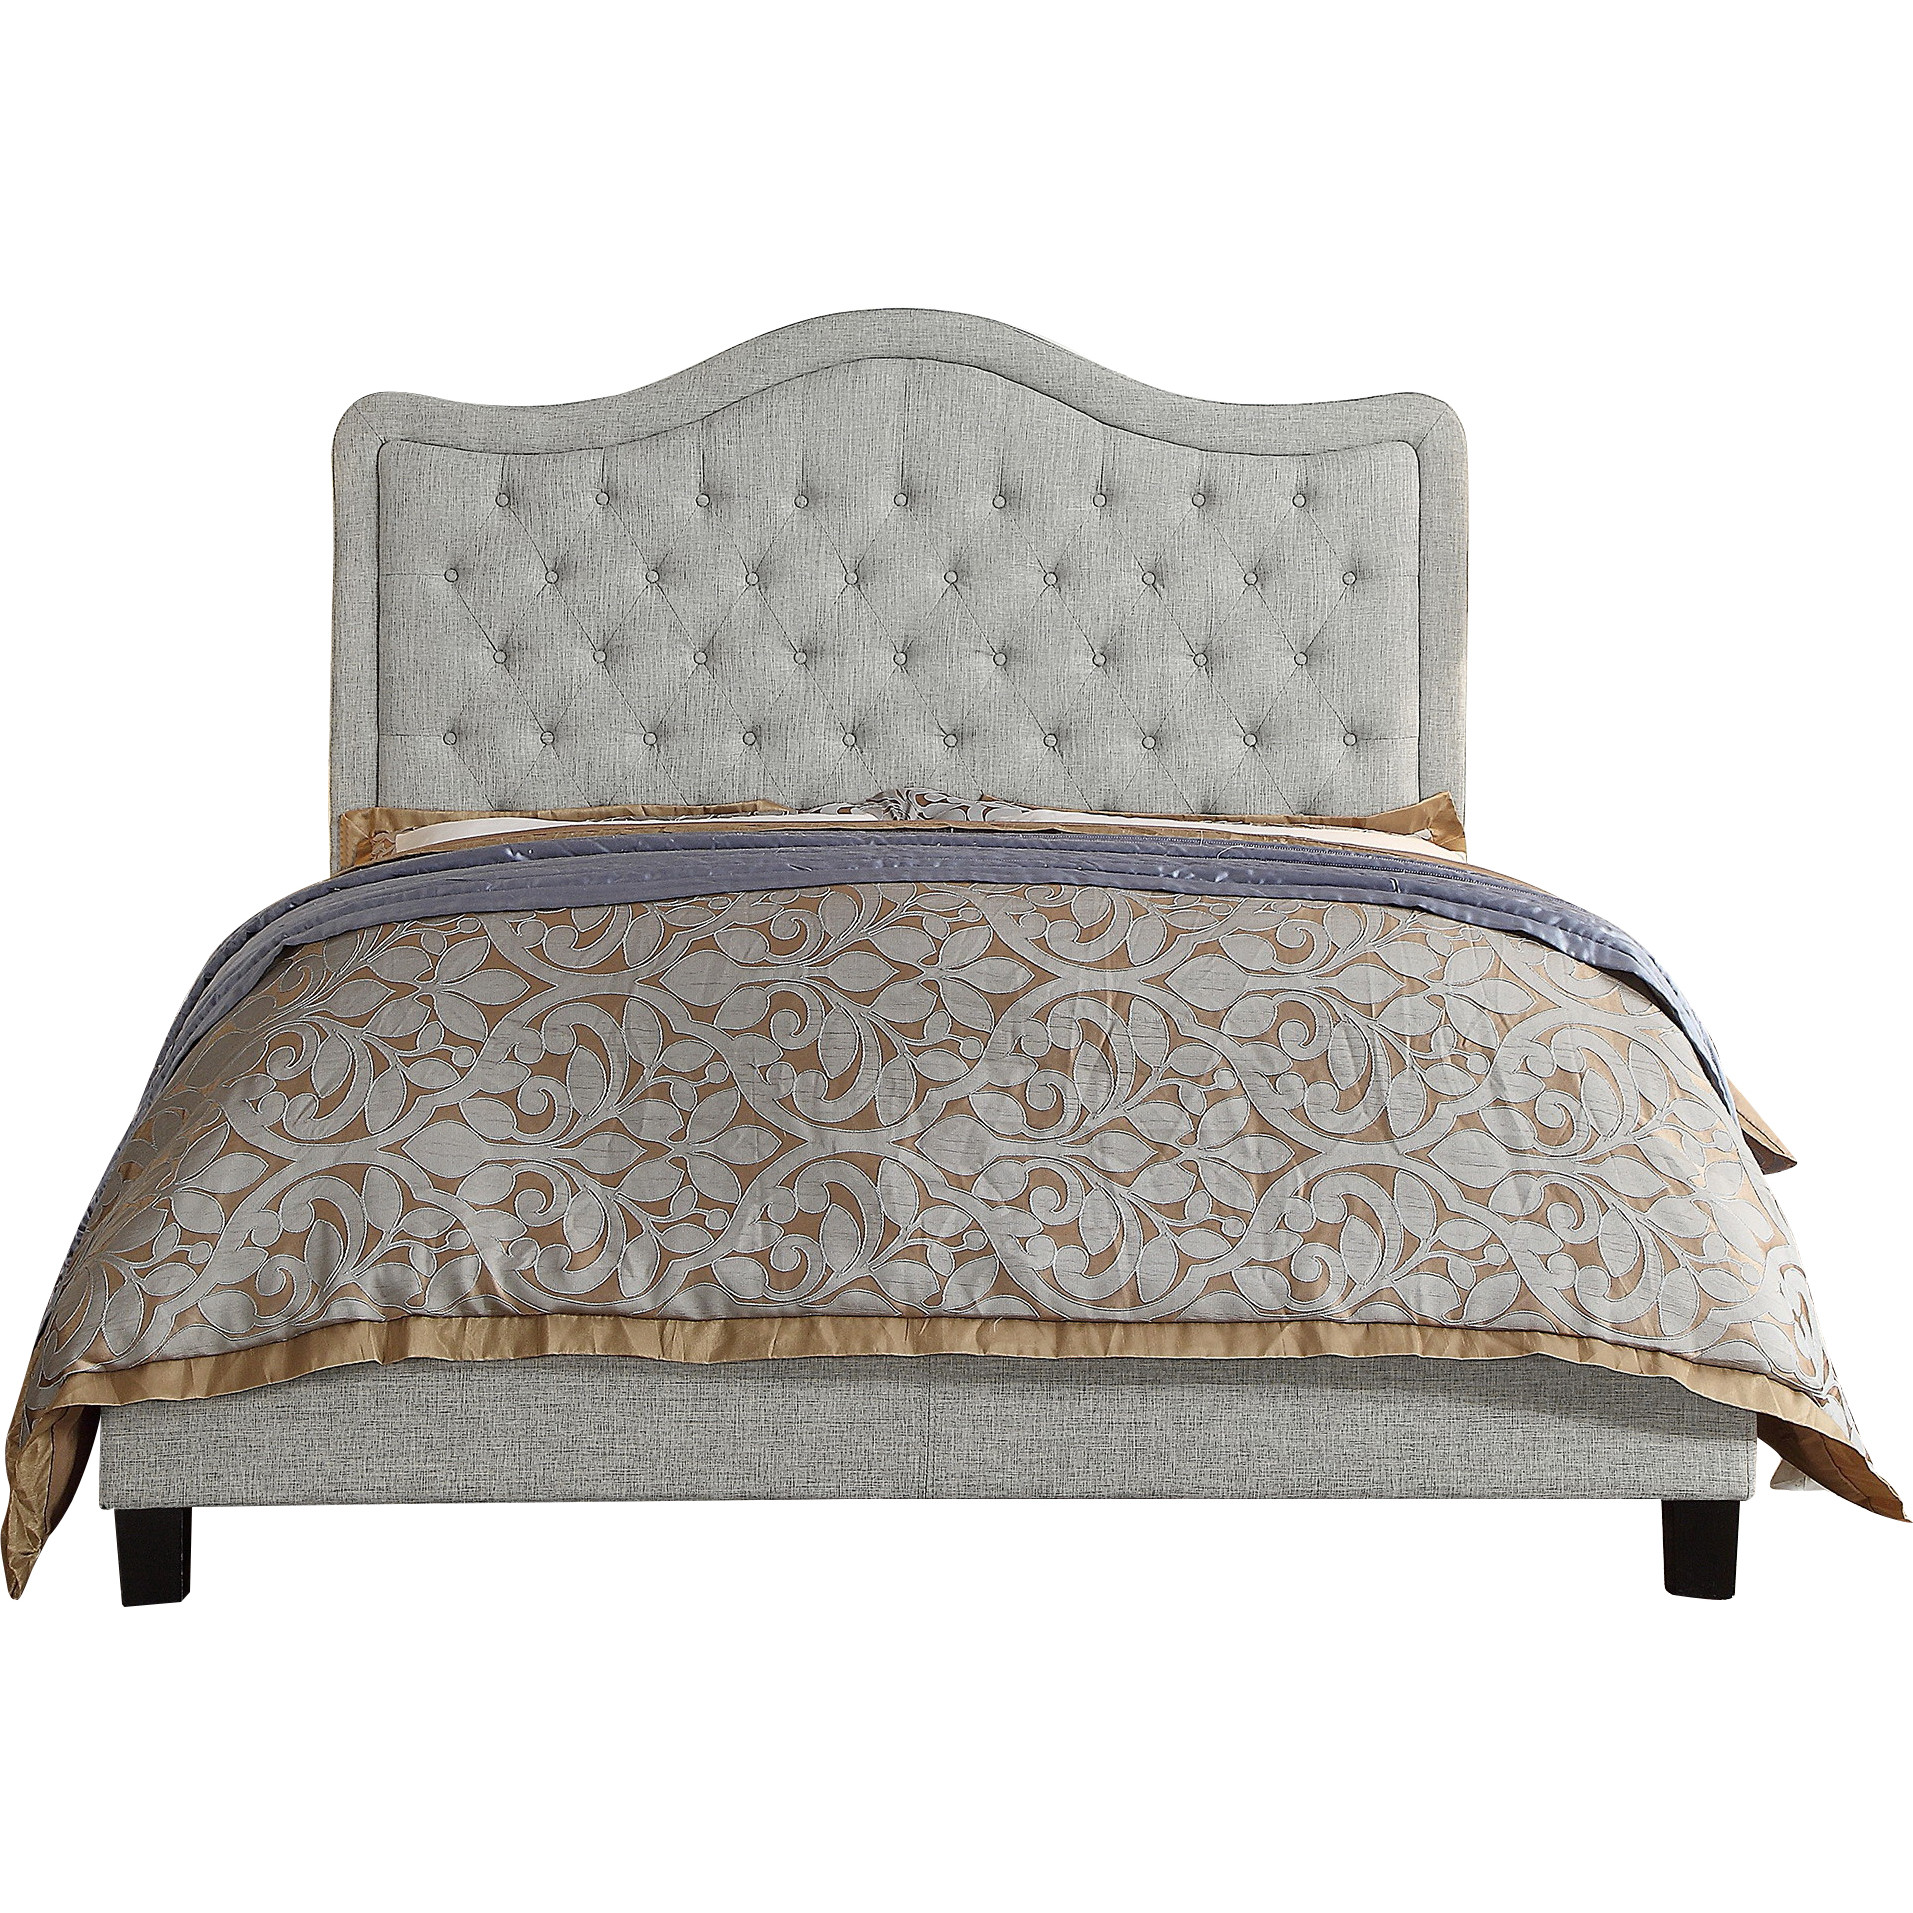 Alton Furniture Agnella King Upholstered Panel Bed, Gray by Fully Wind Co, Ltd.